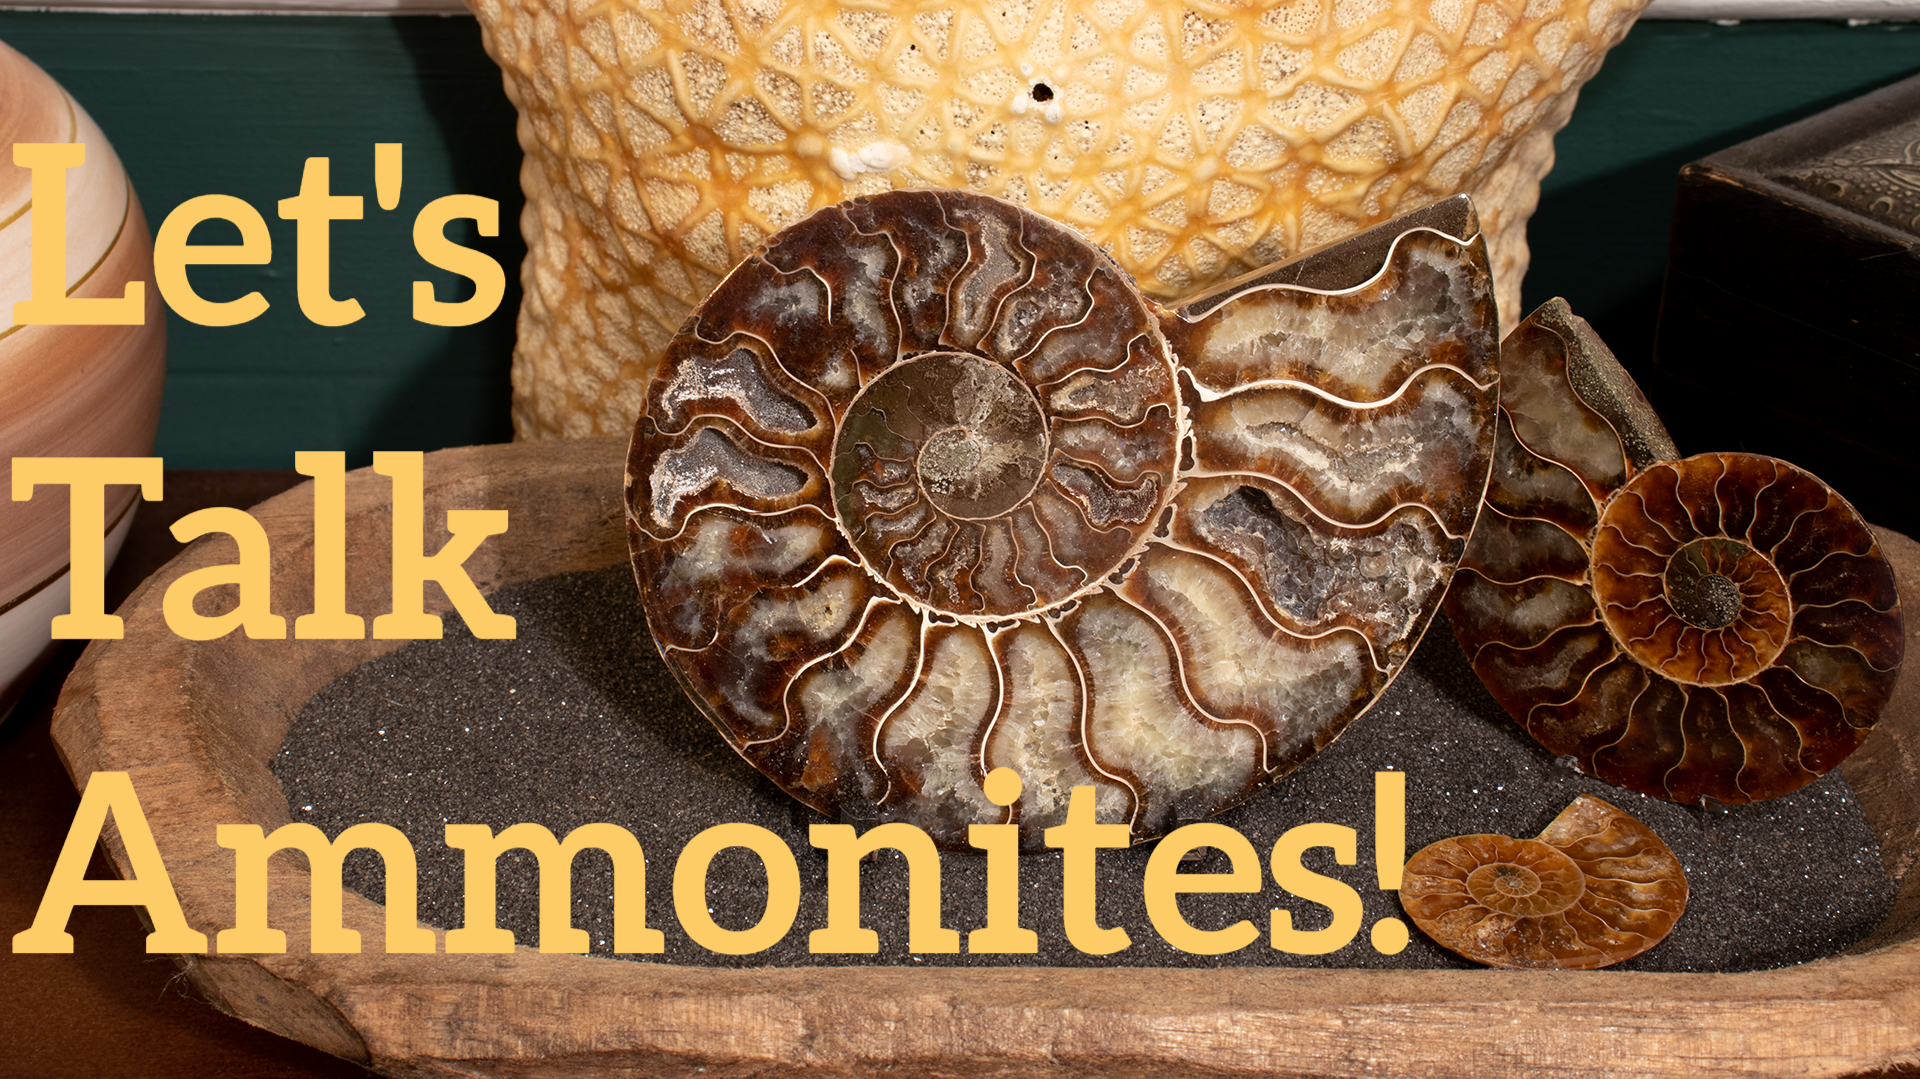 let-s-talk-ammonites-.png